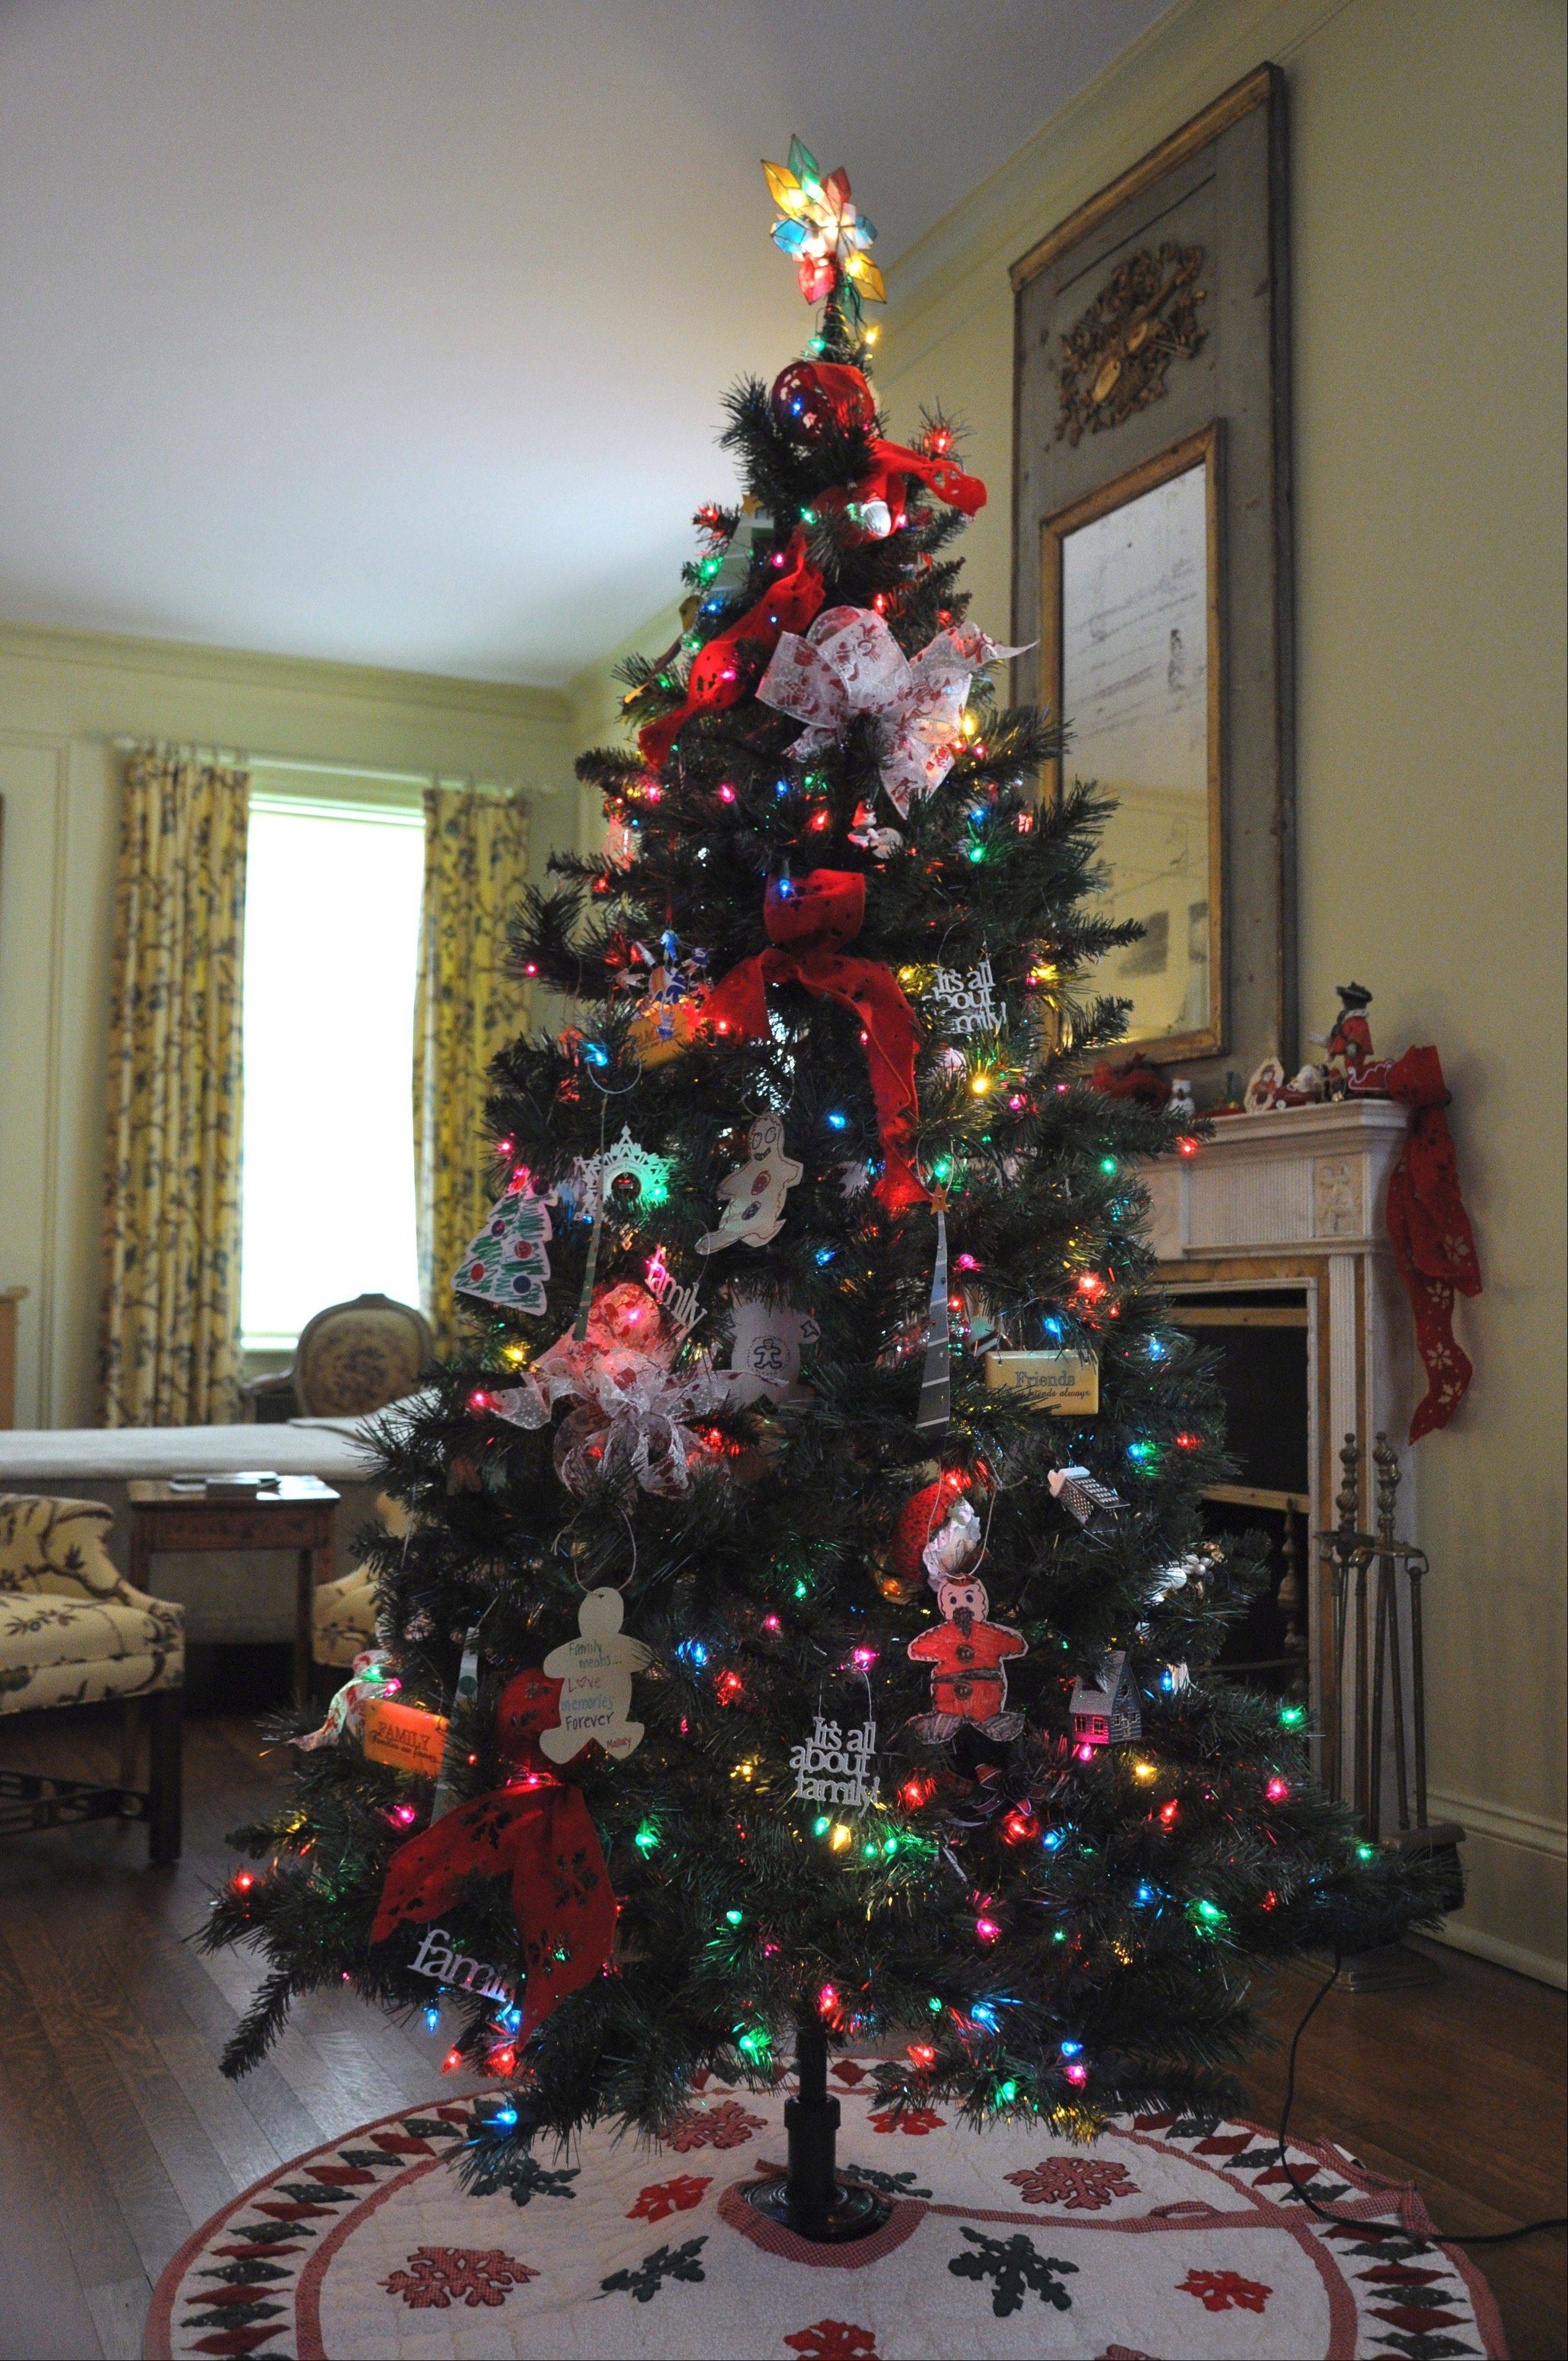 This tree decorated by Metropolitan Family Services is part of the Community Tree display this year.